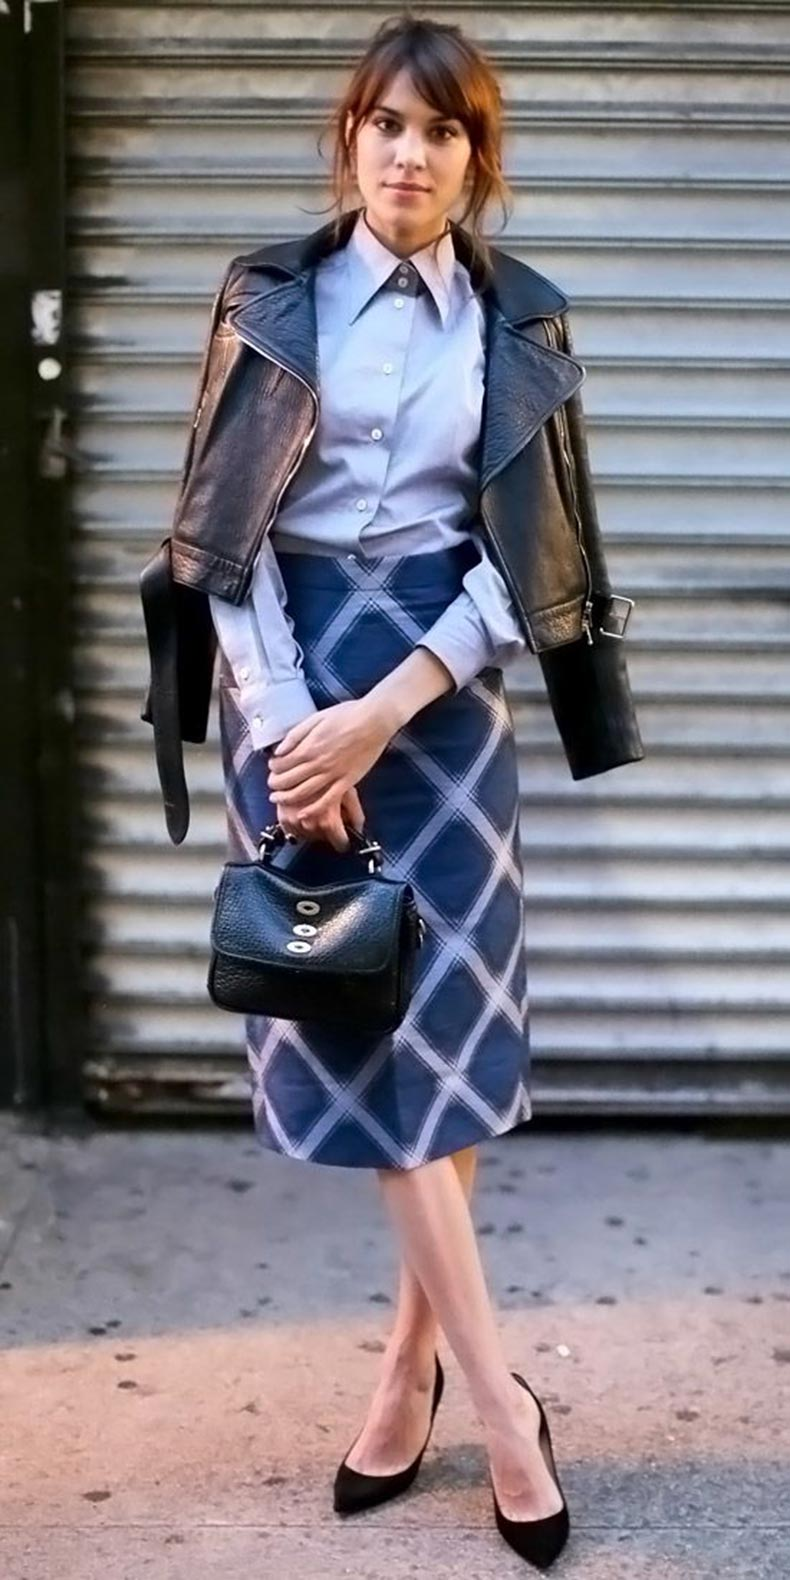 printed-pencil-skirt-windowpane-prints-midi-skirt-moto-jacket-black-leather-moto-jacket-black-pumps-mini-bag-alexa-chung-via-instyle